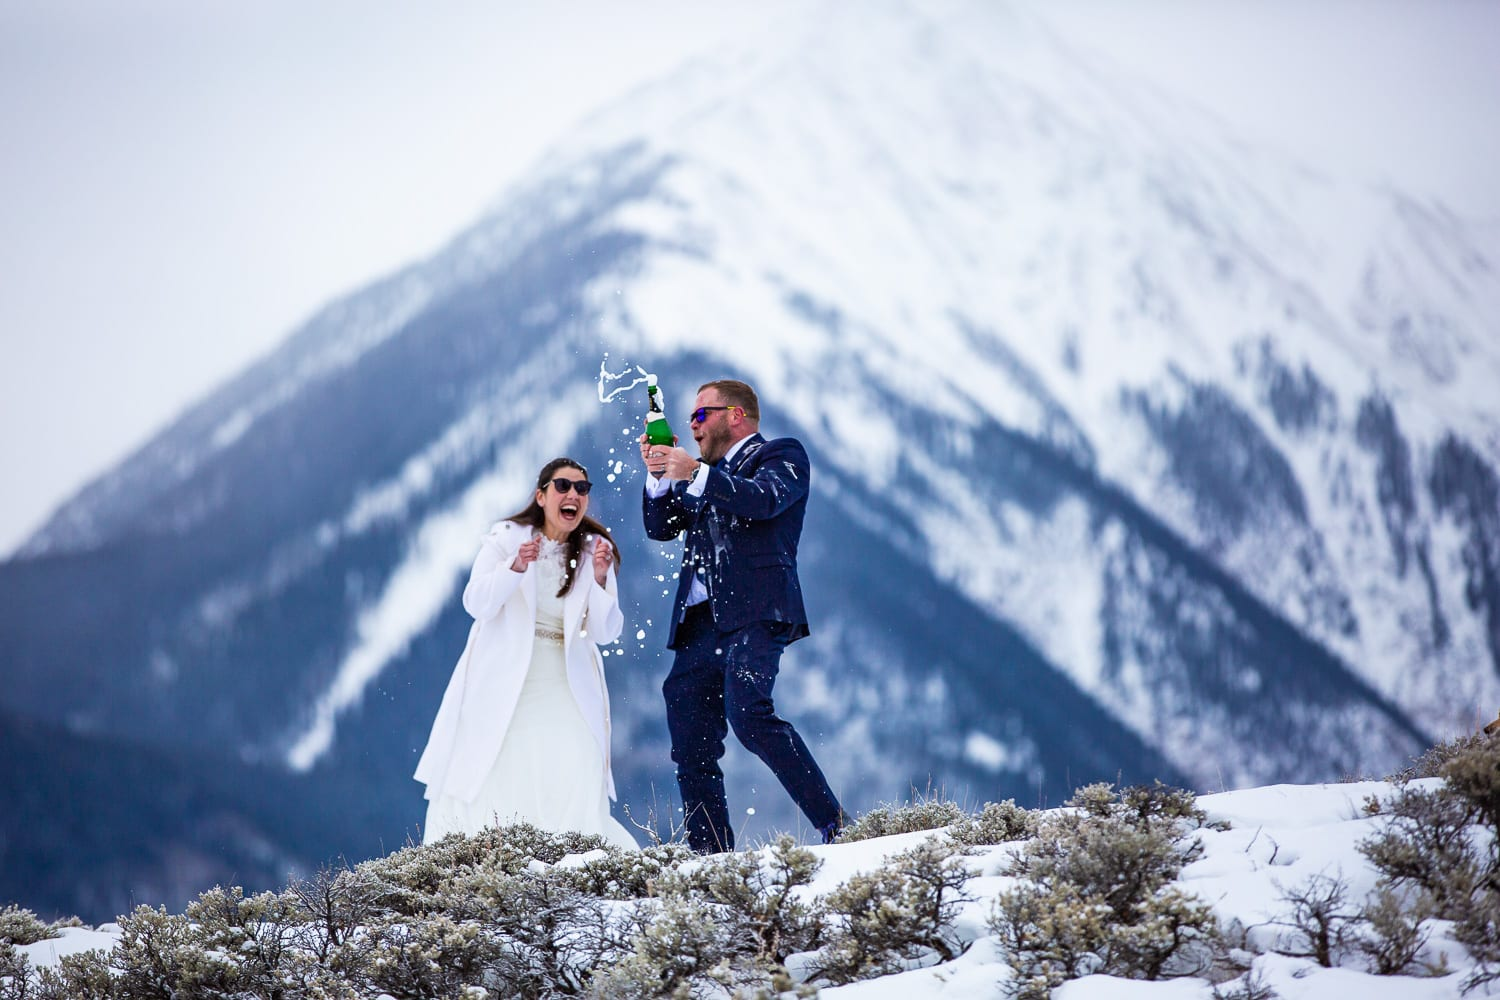 An elopement couple spray champagne in front of a large mountain.